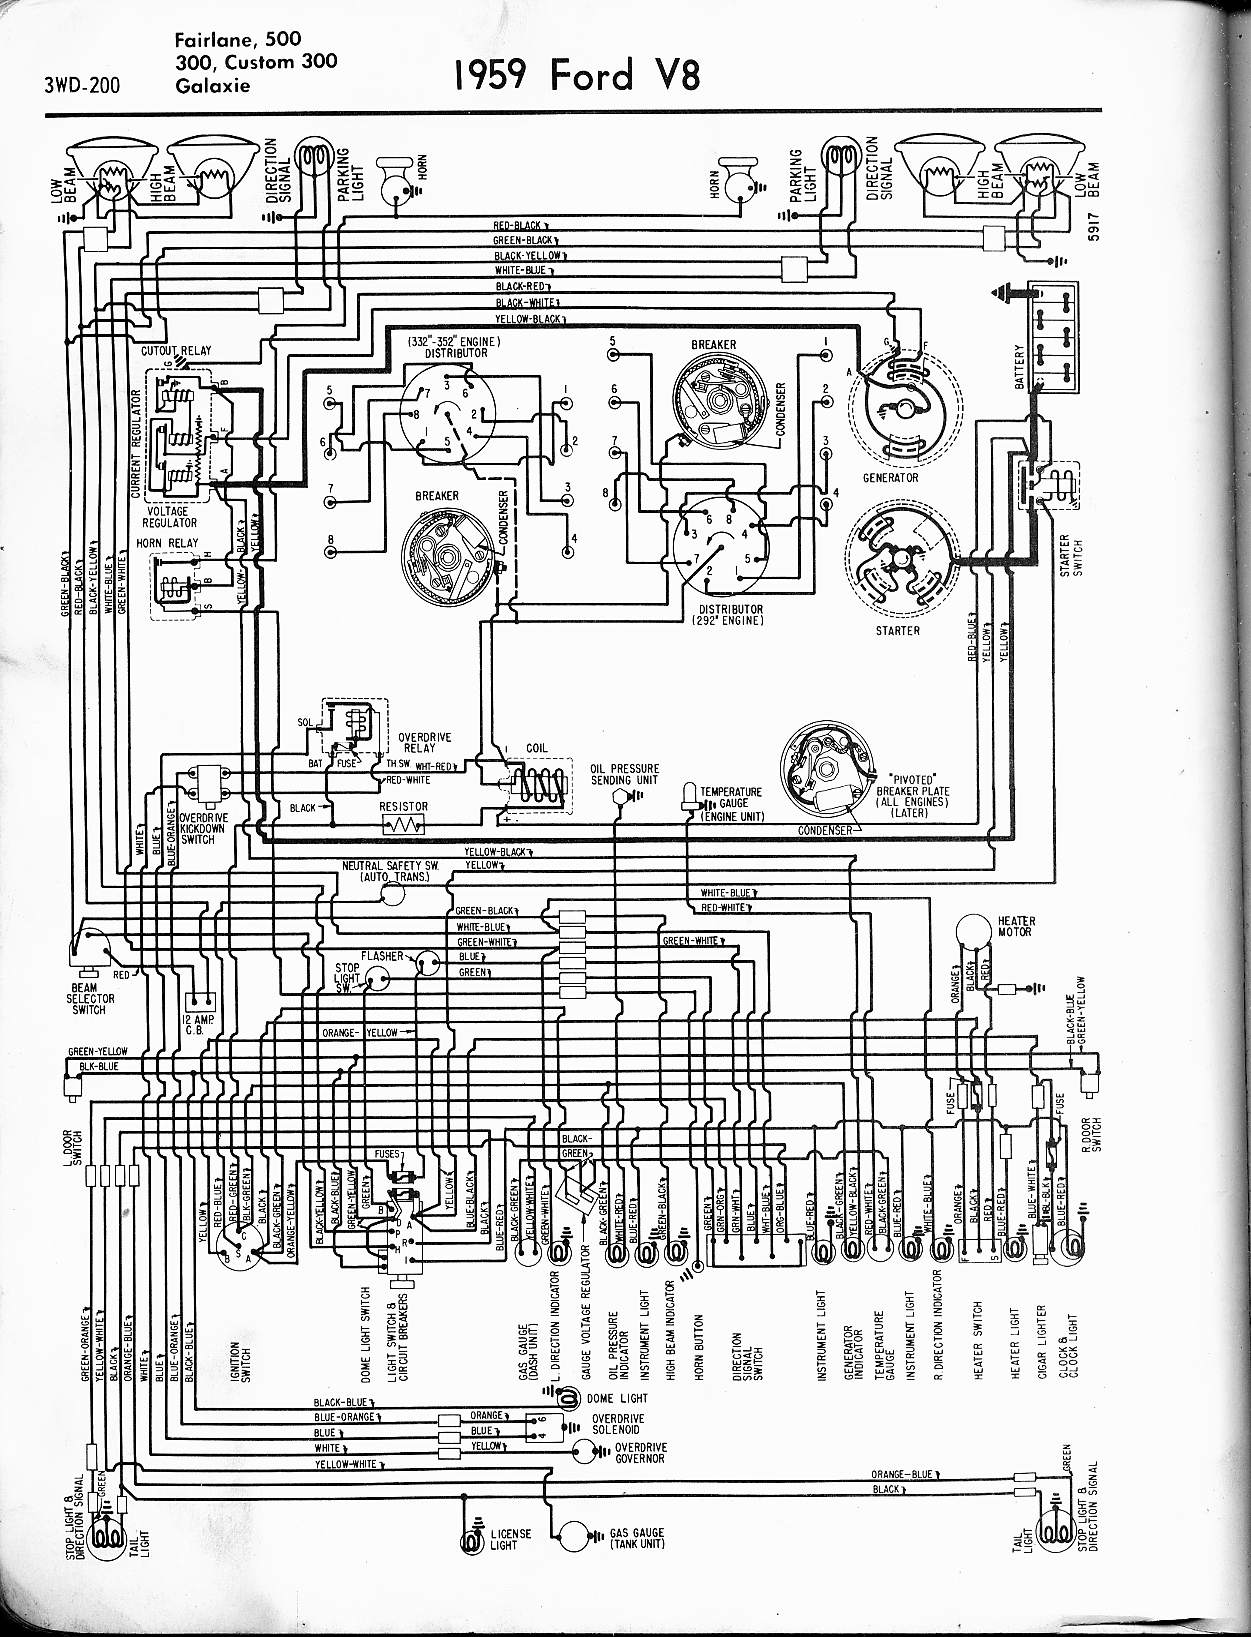 63 Ford Galaxie Wiring Diagram Reinvent Your 68 Vw Relay Deamer 1963 Dash Board Schematics Rh Parntesis Co 500